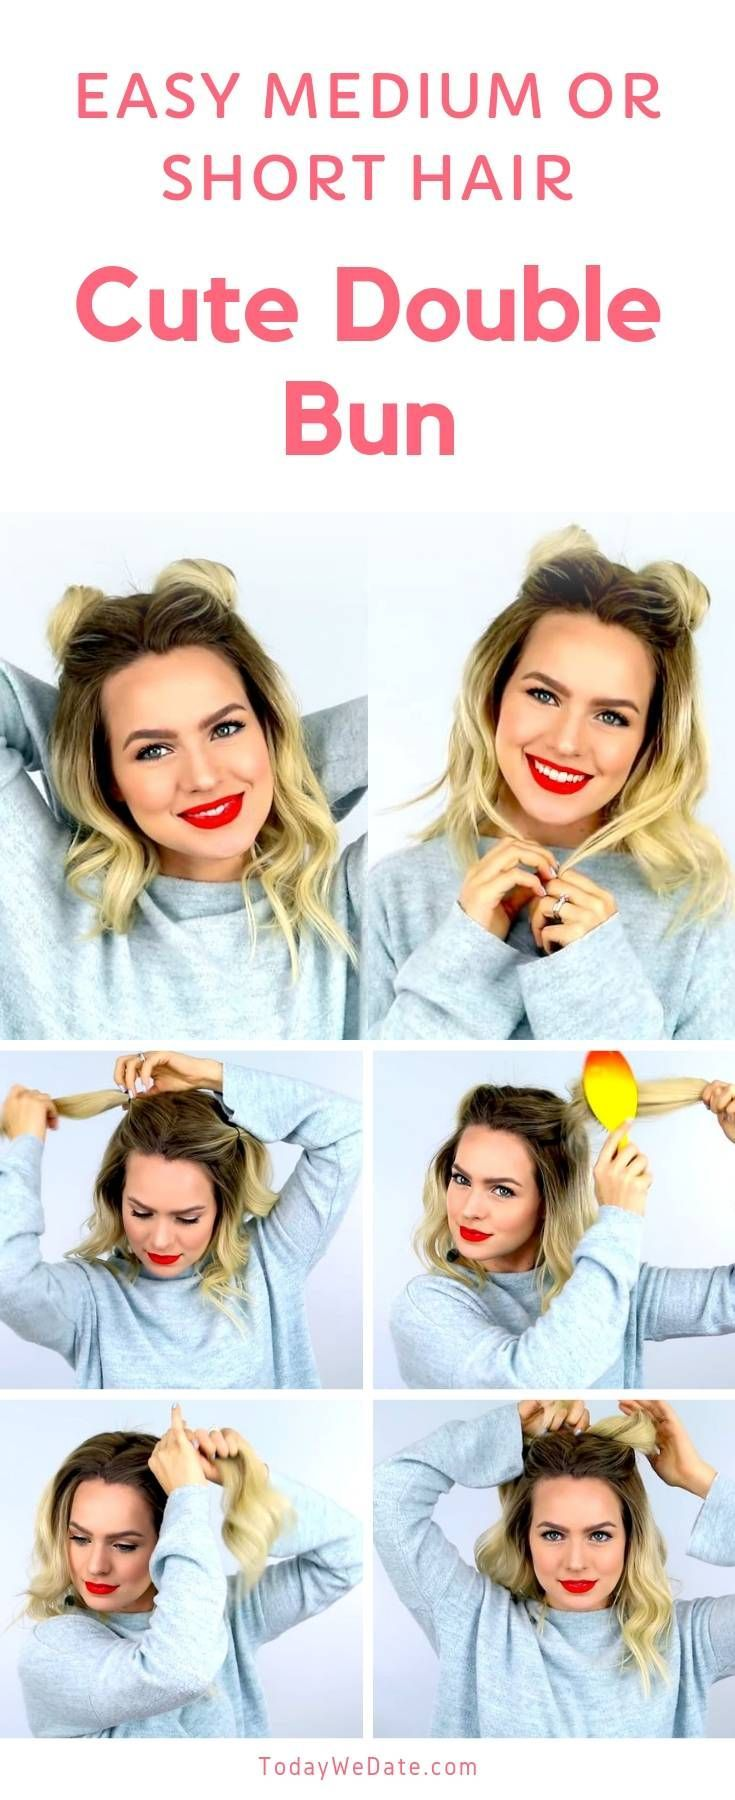 Hair Styles For School 12 No-heat Easy Summer Hairstyles Anyone Can